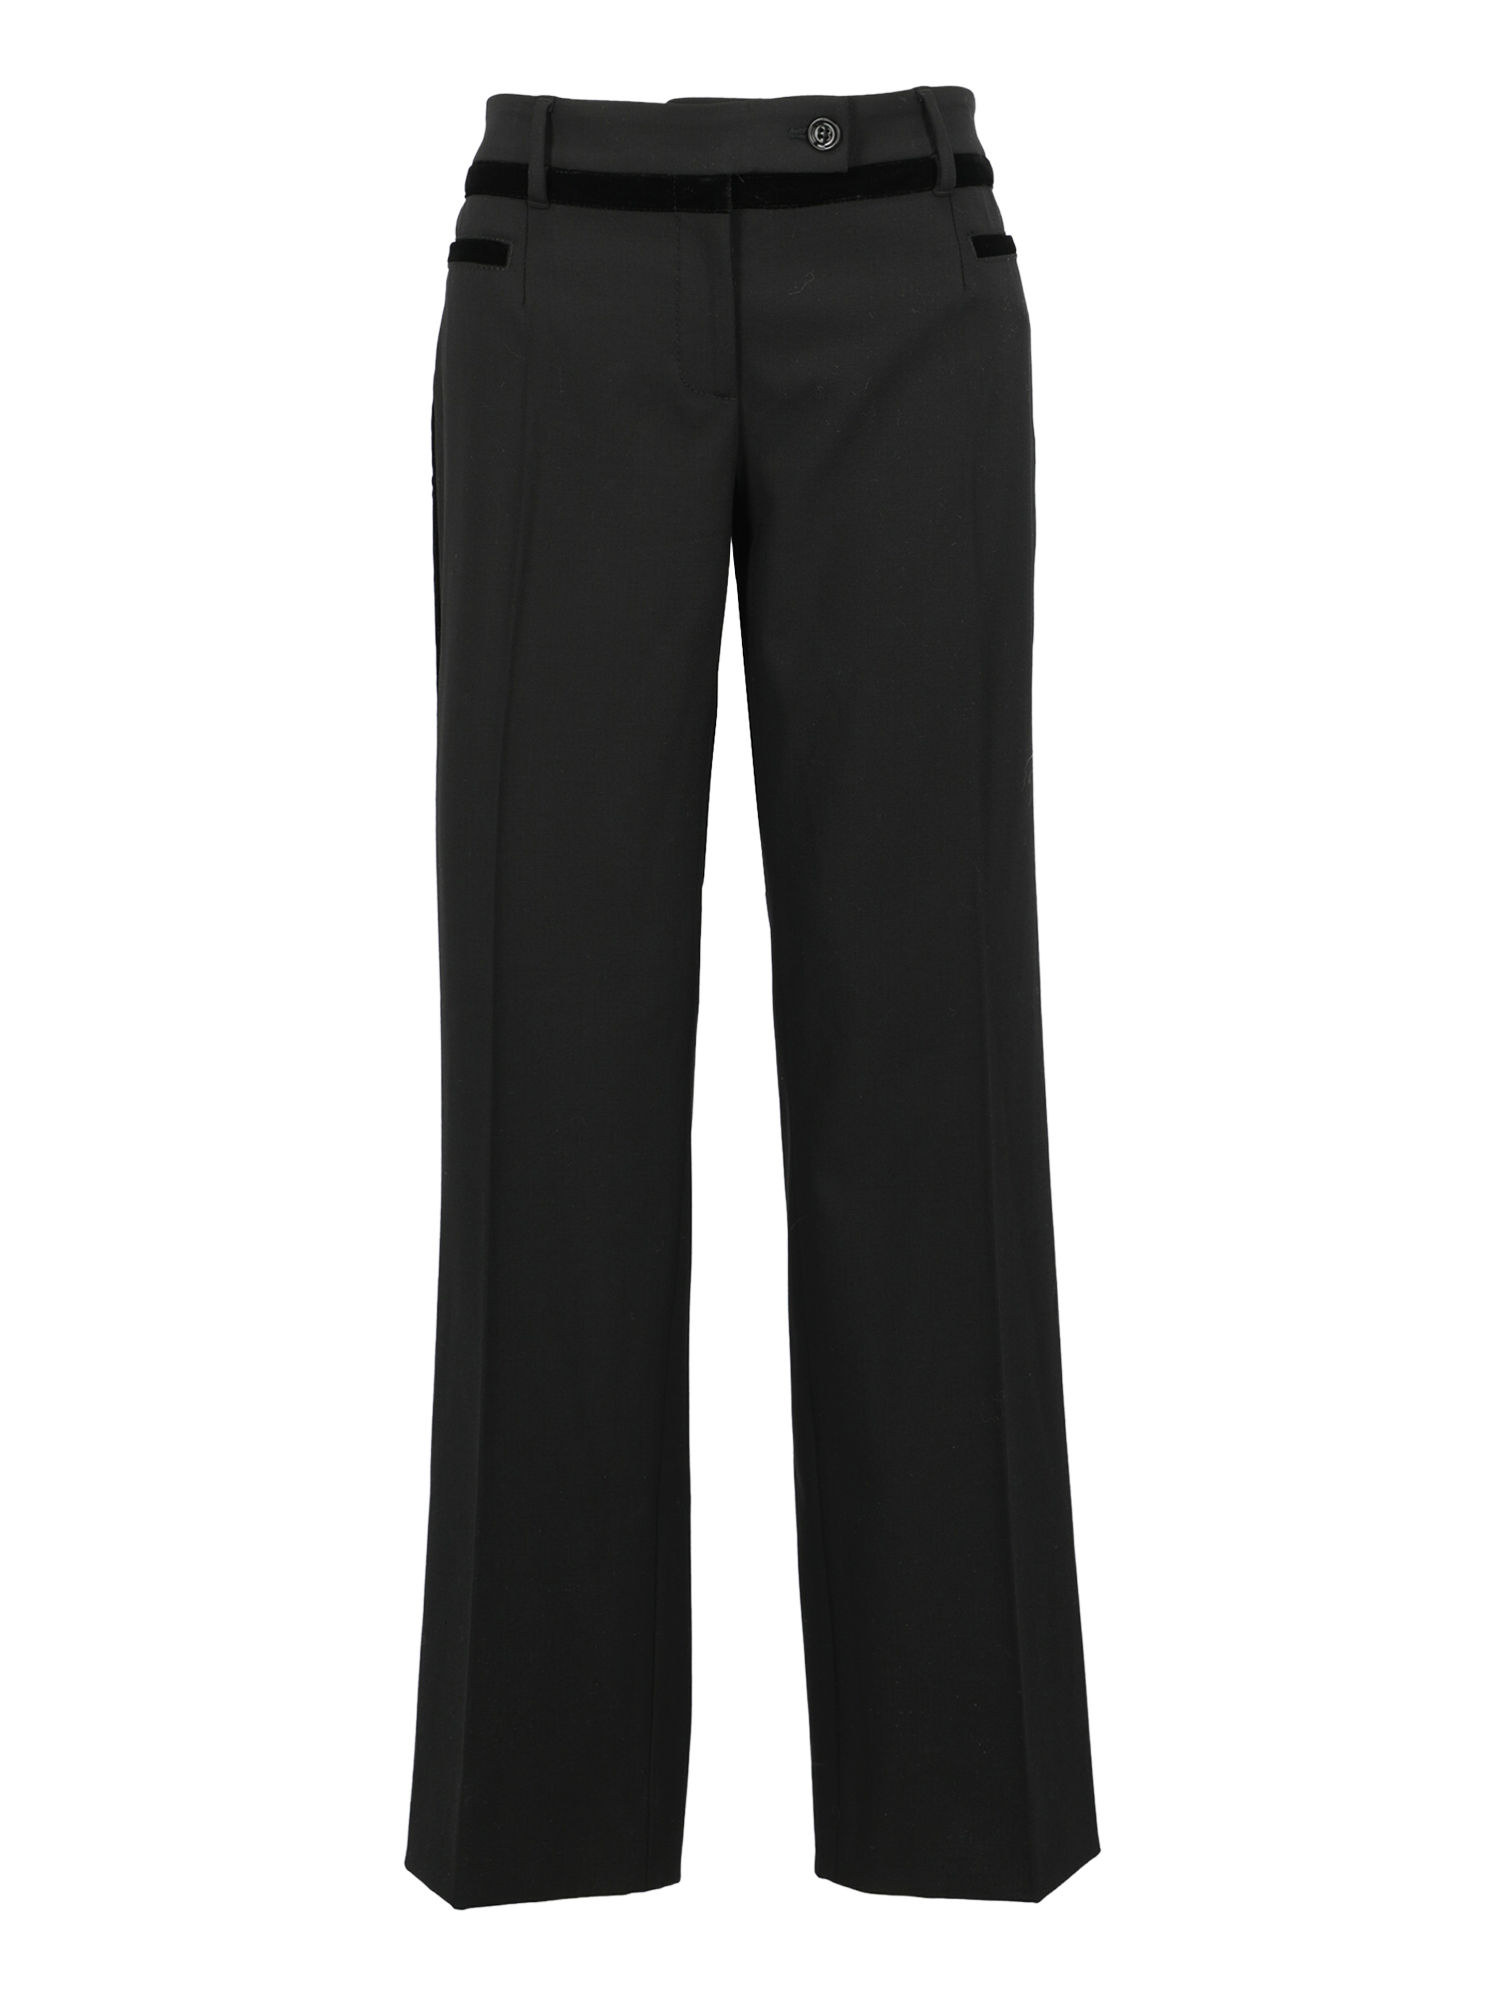 Pre-owned Dolce & Gabbana Trousers In Black